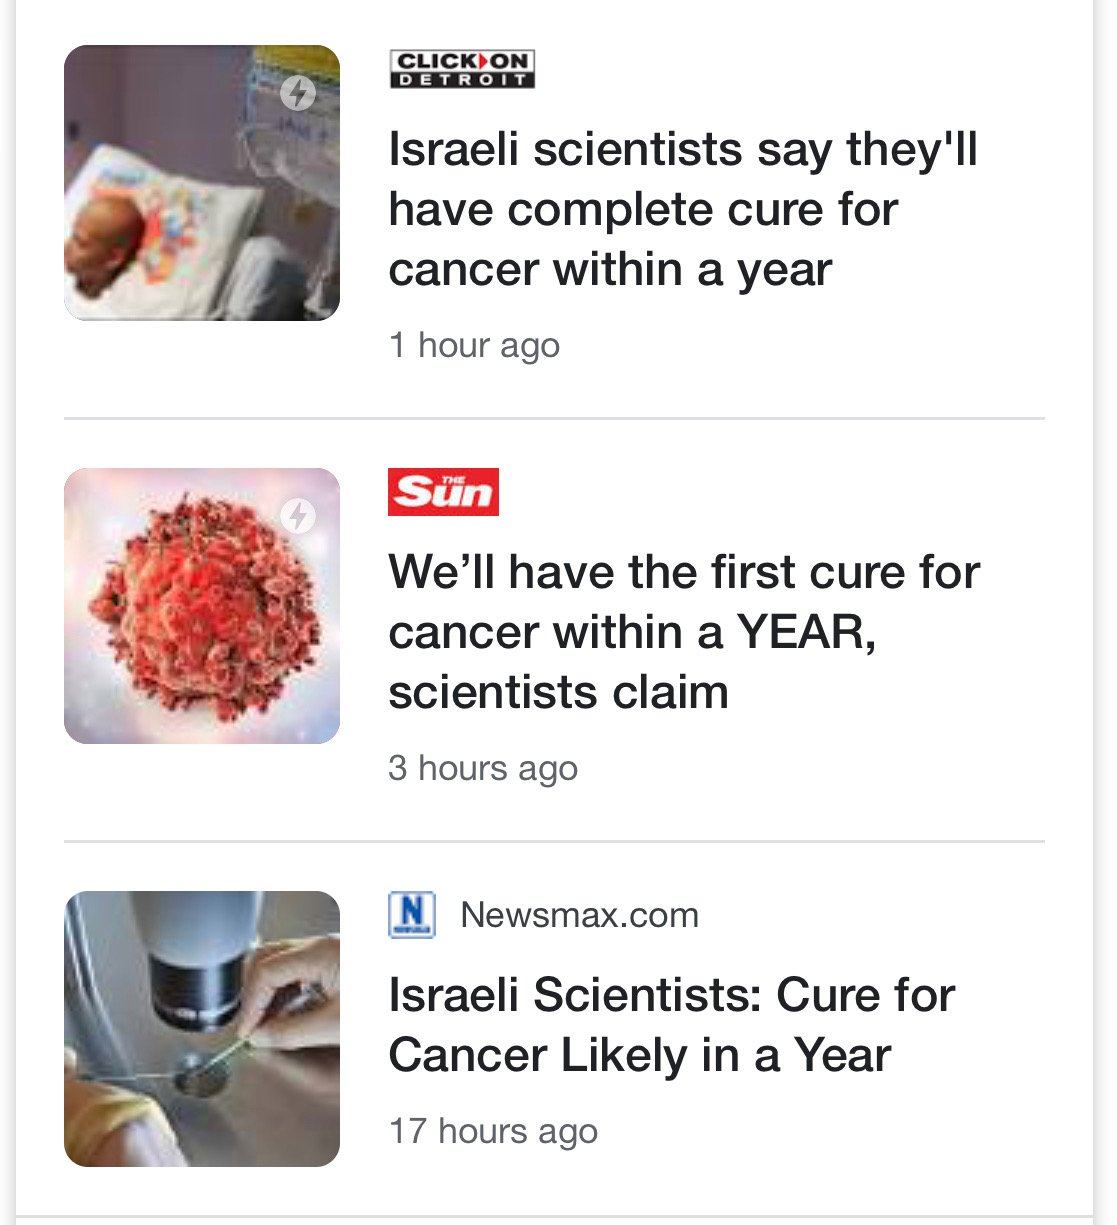 Company Claims 'Complete Cure For Cancer' In A Year - Cue The